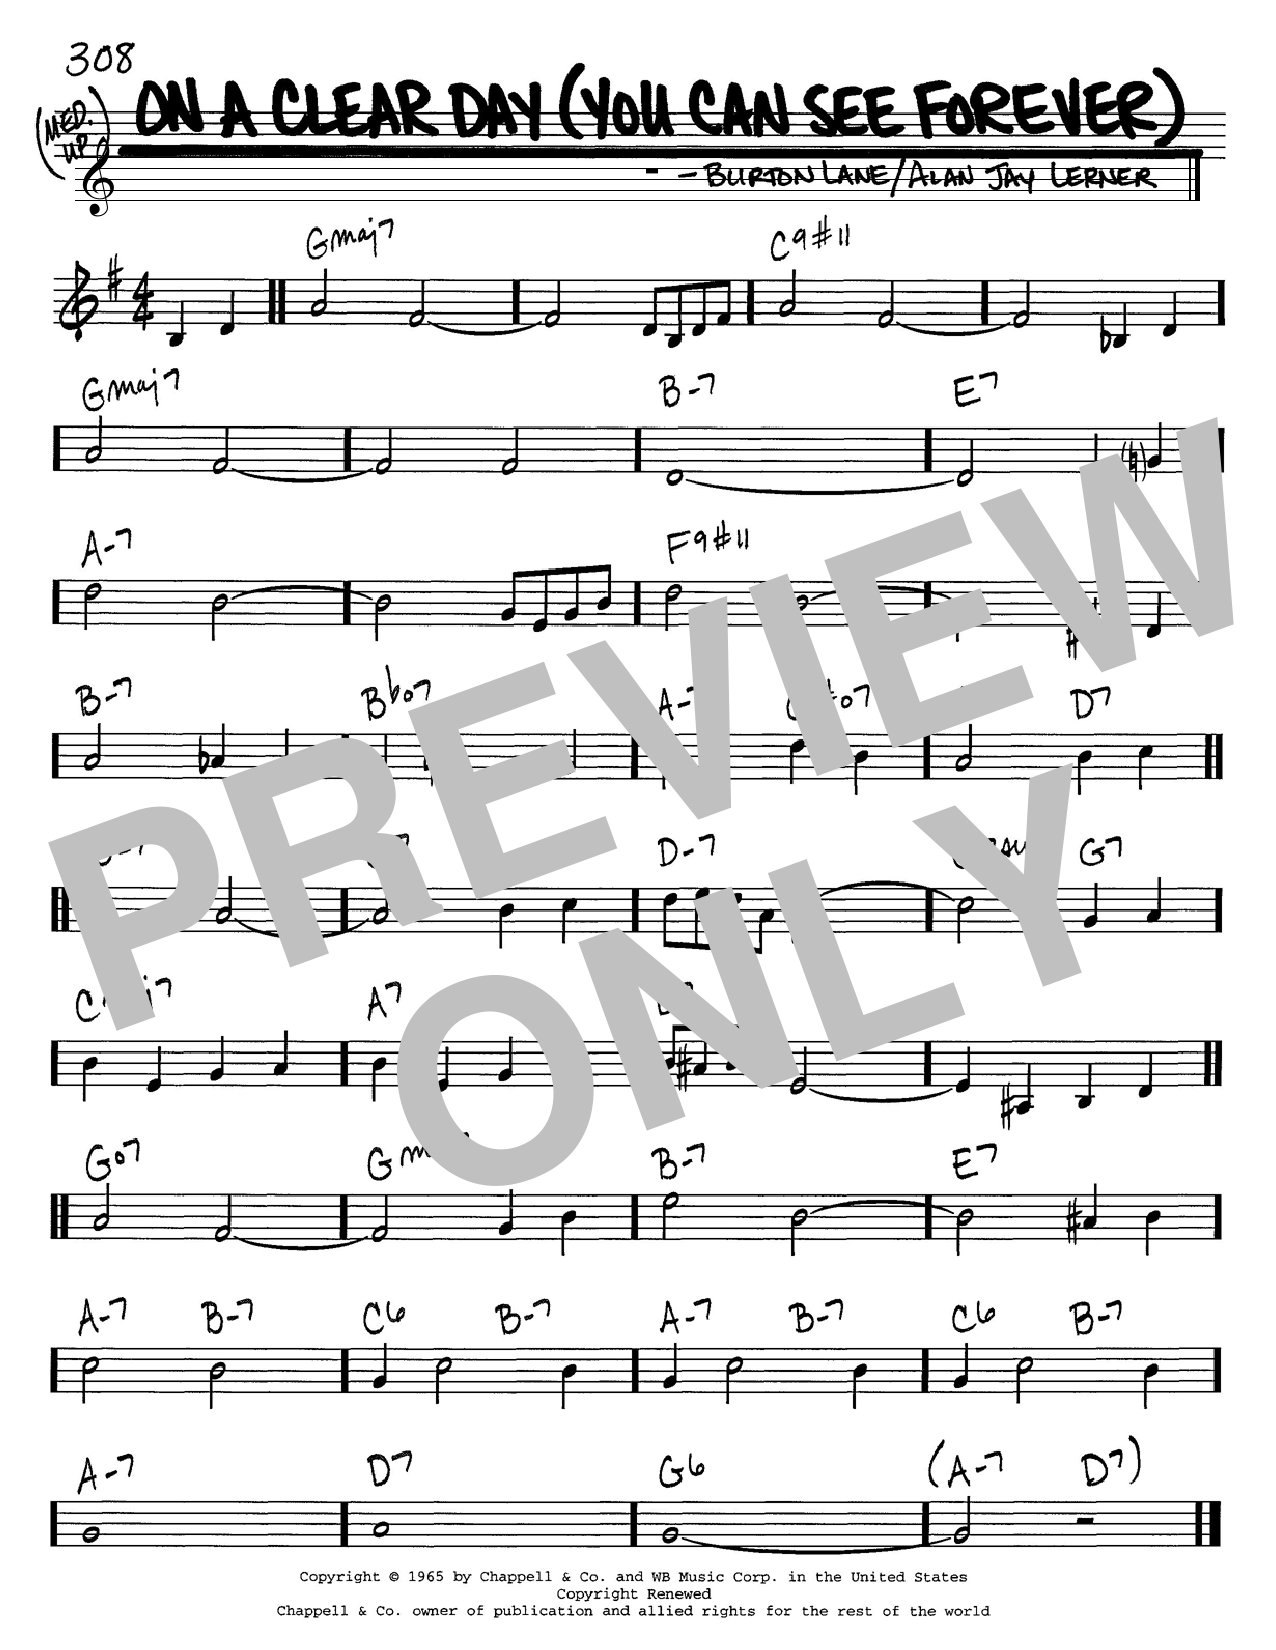 Download Alan Jay Lerner 'On A Clear Day (You Can See Forever)' Digital Sheet Music Notes & Chords and start playing in minutes